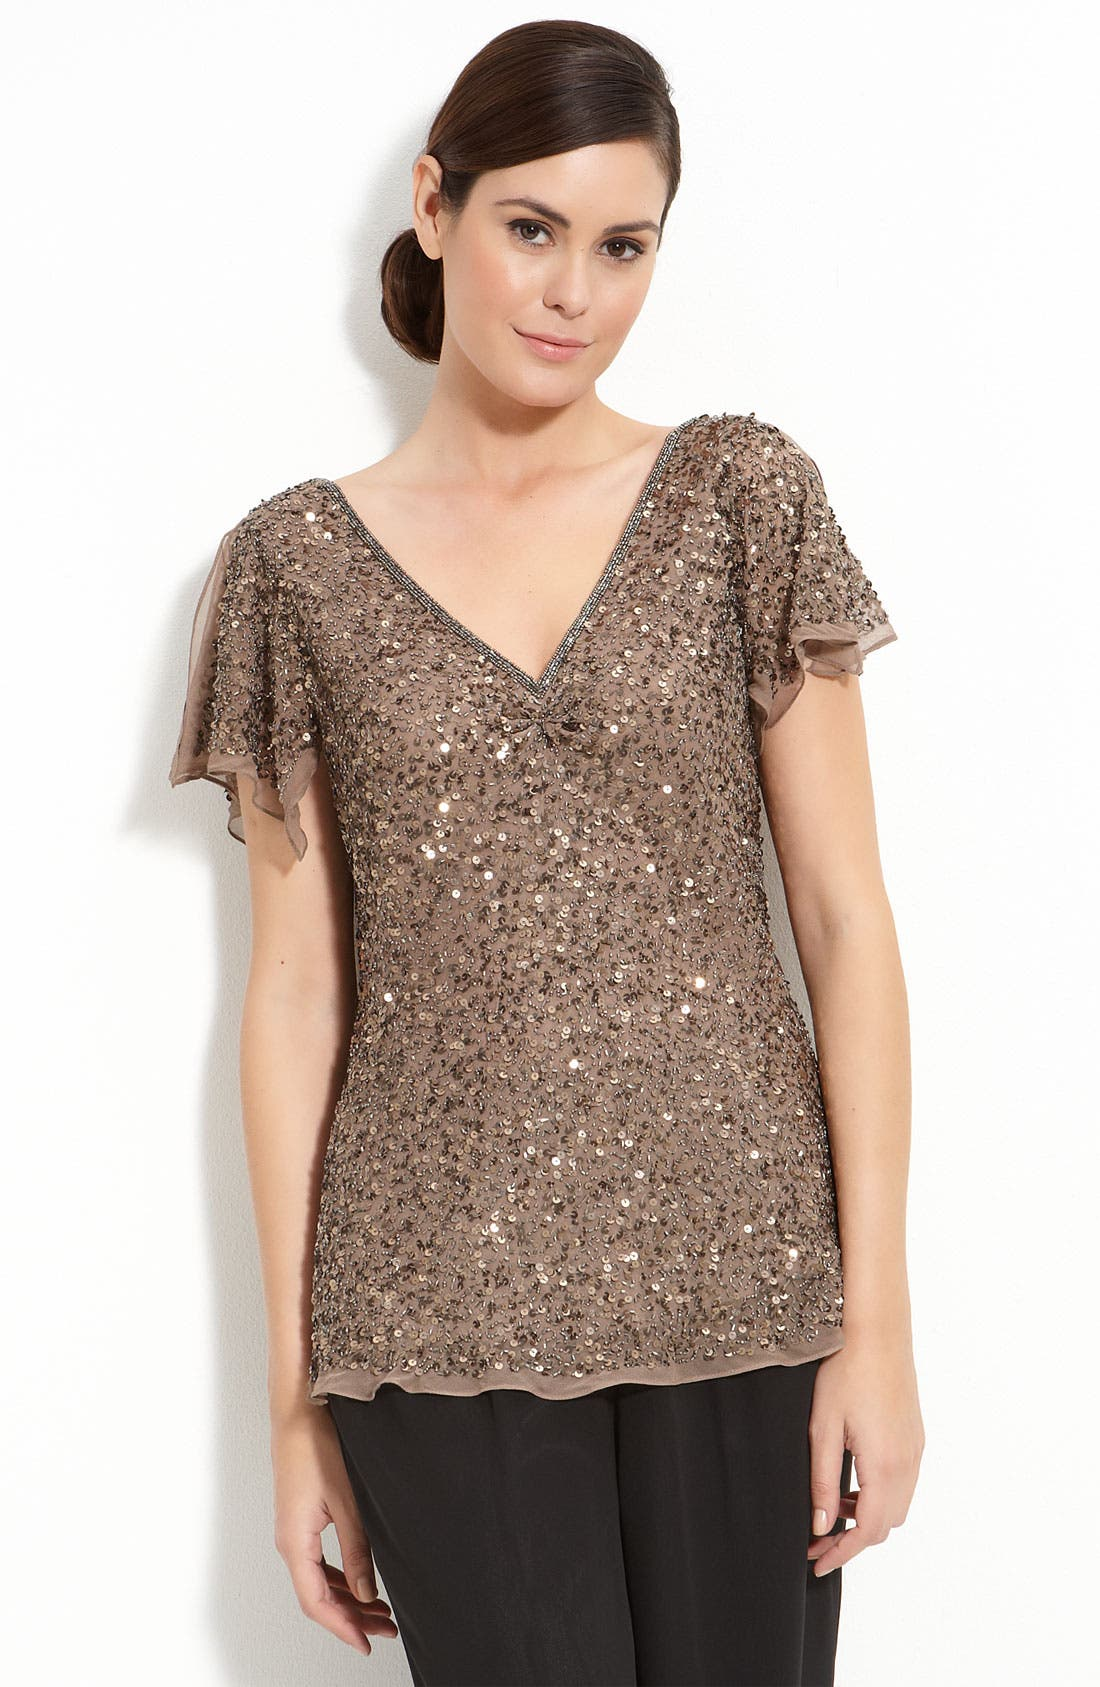 Main Image - Adrianna Papell 'Dazzling Winds' Sequin Top